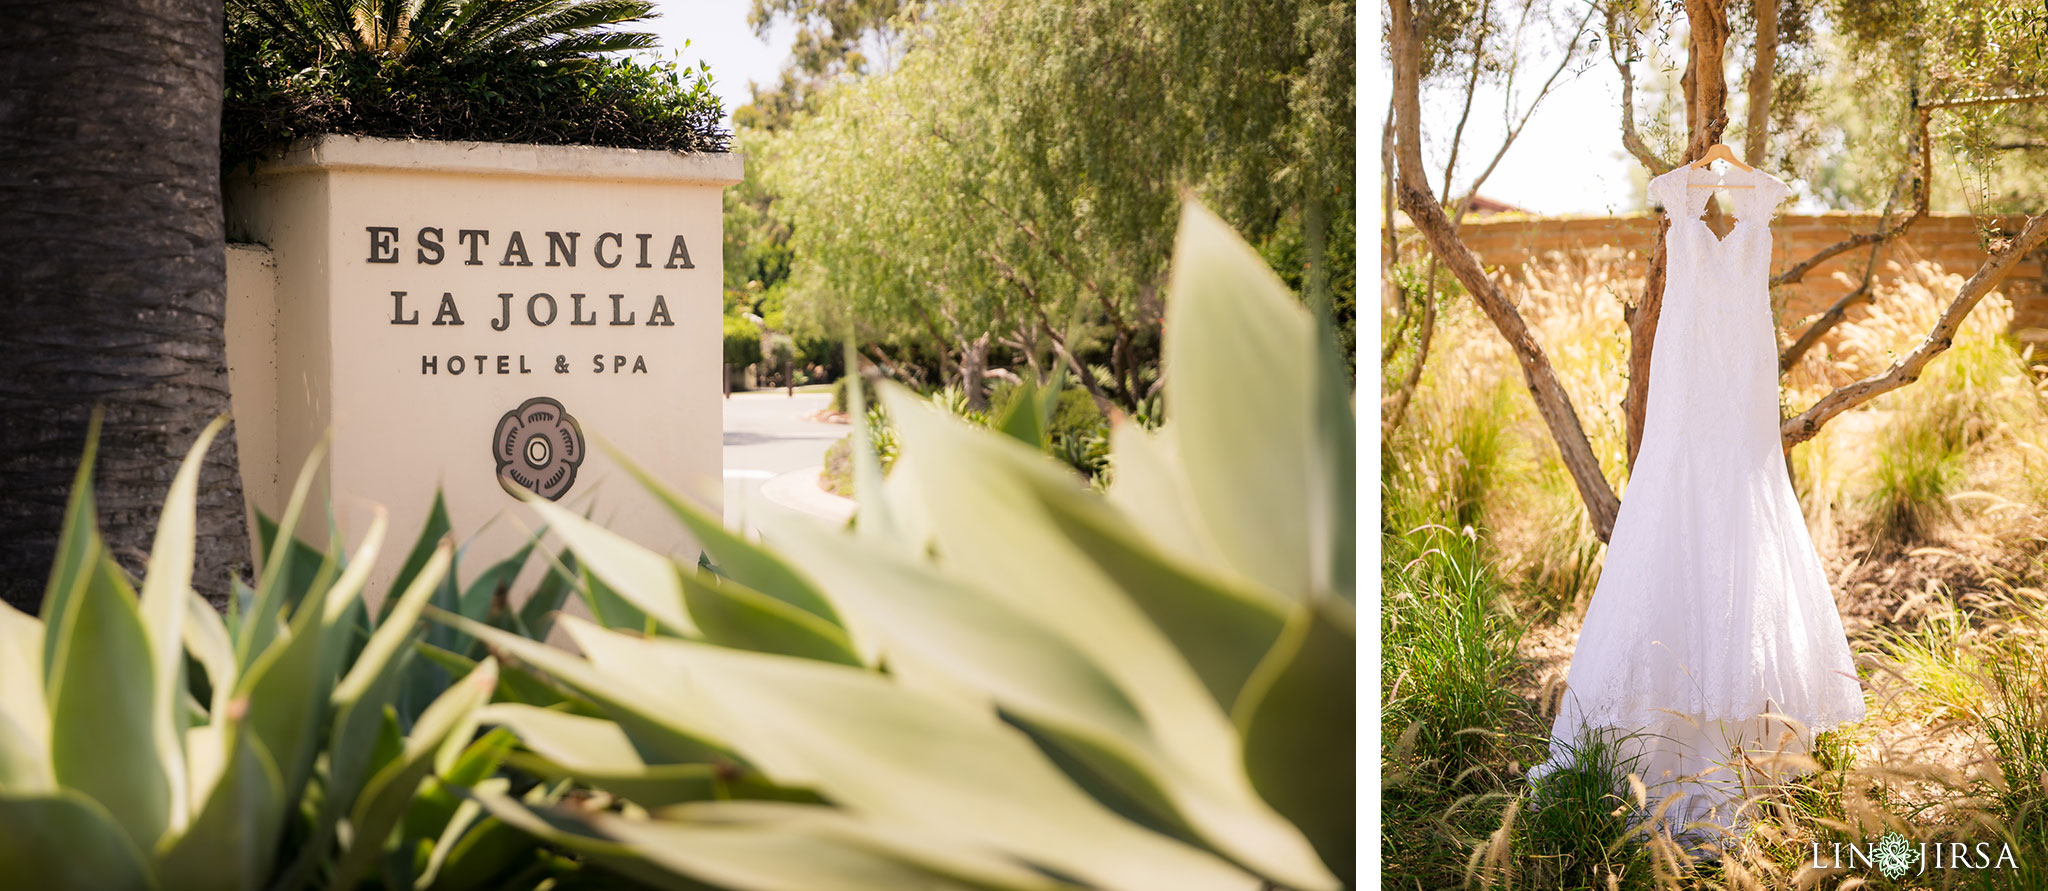 zsr estancia la jolla hotel spa persian wedding photography